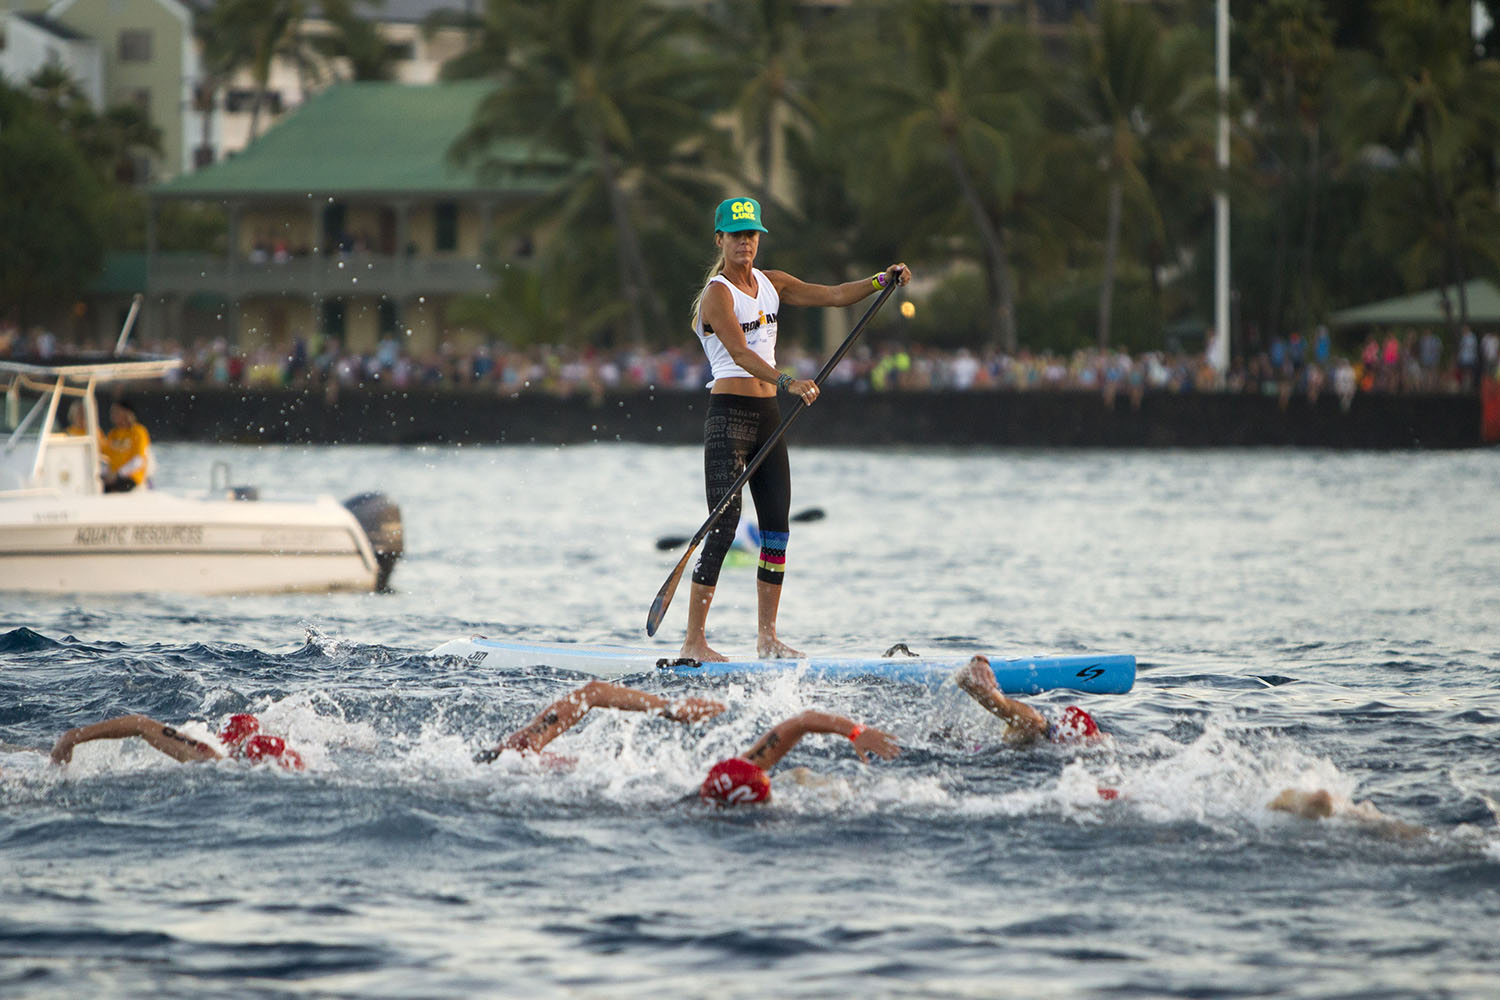 A paddle boarder watches over swimmers during the start of the 2014 IRONMAN World Championship.